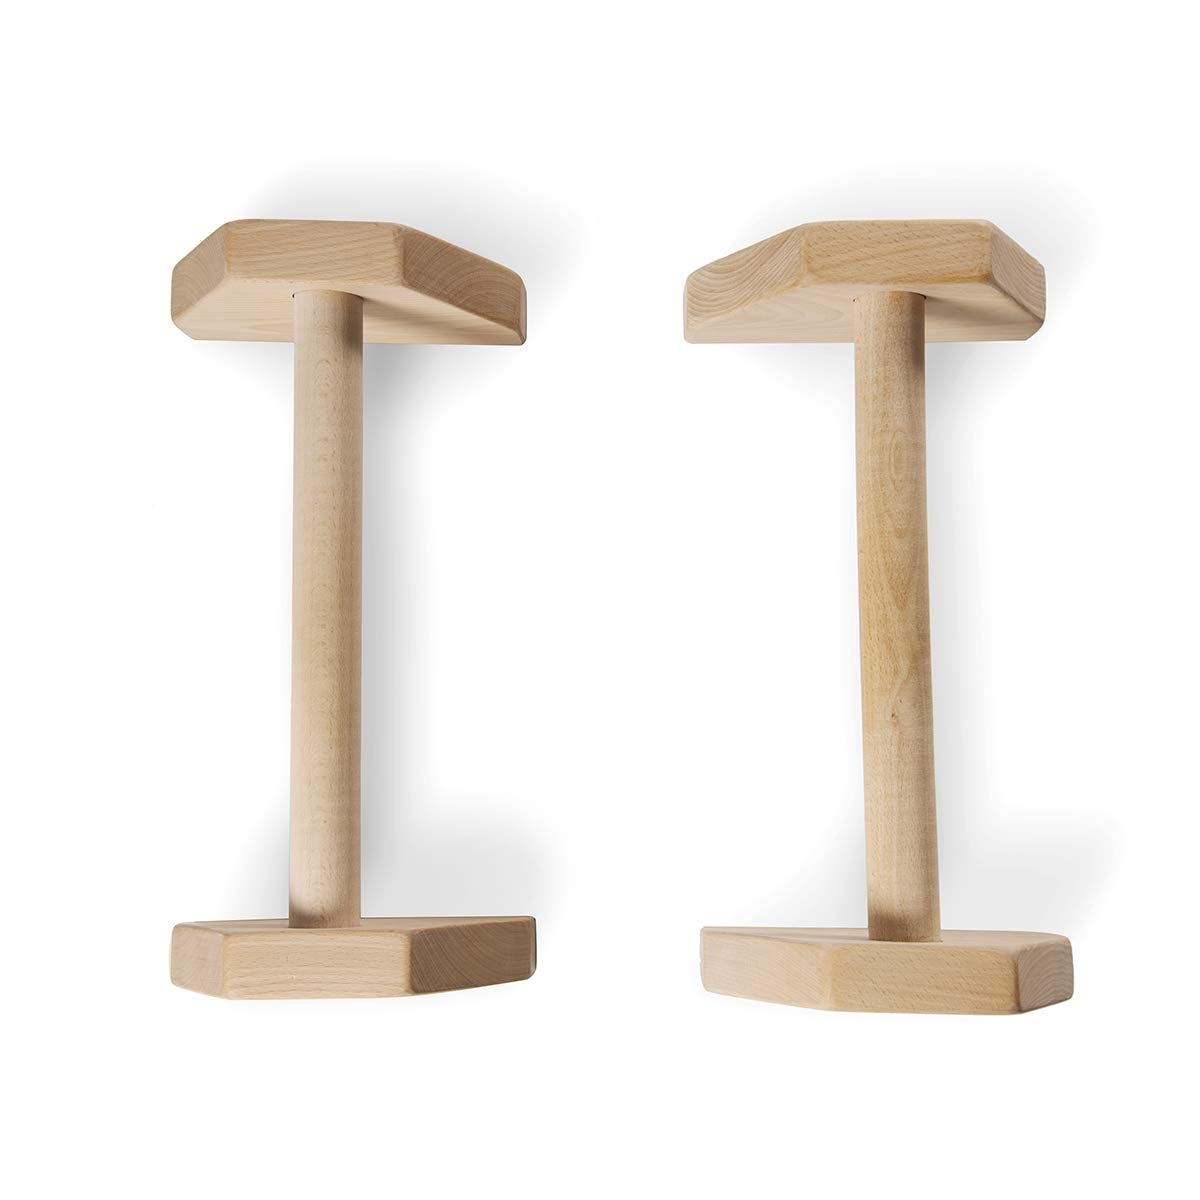 YOGABODY Birch Wood Parallettes (Set of 2)   Beautiful, Smooth, Non-Slip Yoga & Gymnastic Training Tool for L-Sits, Lolasana, Handstand Pushups, Jump Backs & More by YOGABODY (Image #4)